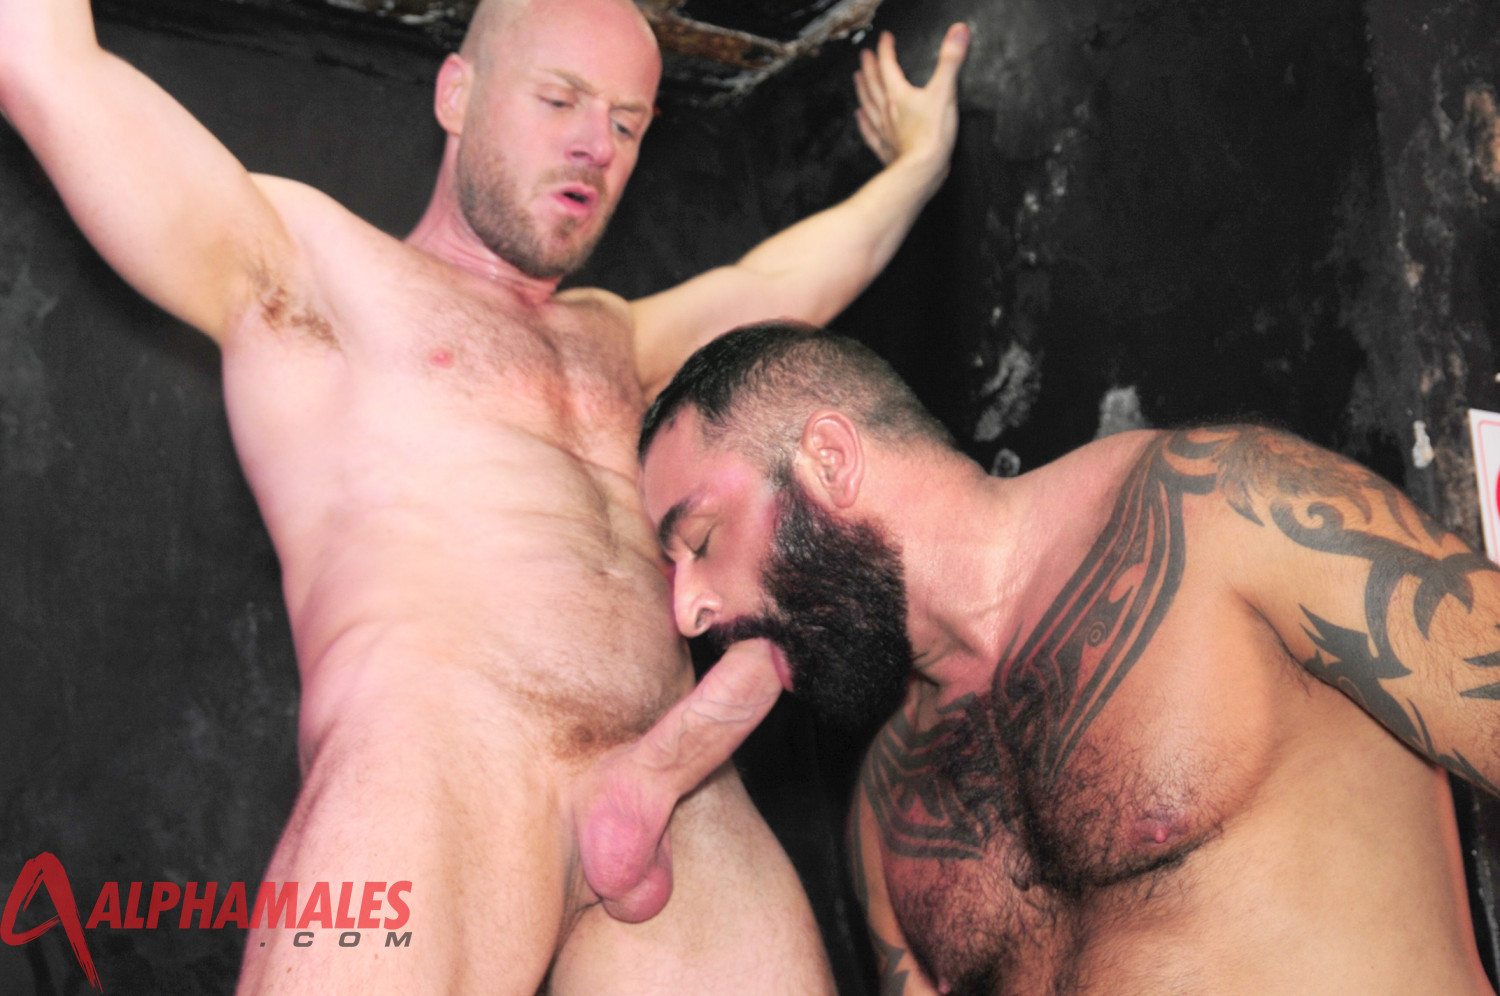 Alphamales Nathan Price and Tom Colt fucking 06 Amateur Tattoo Hairy Muscle Man Fucks a Hot Sex Pig in the Club Toilet